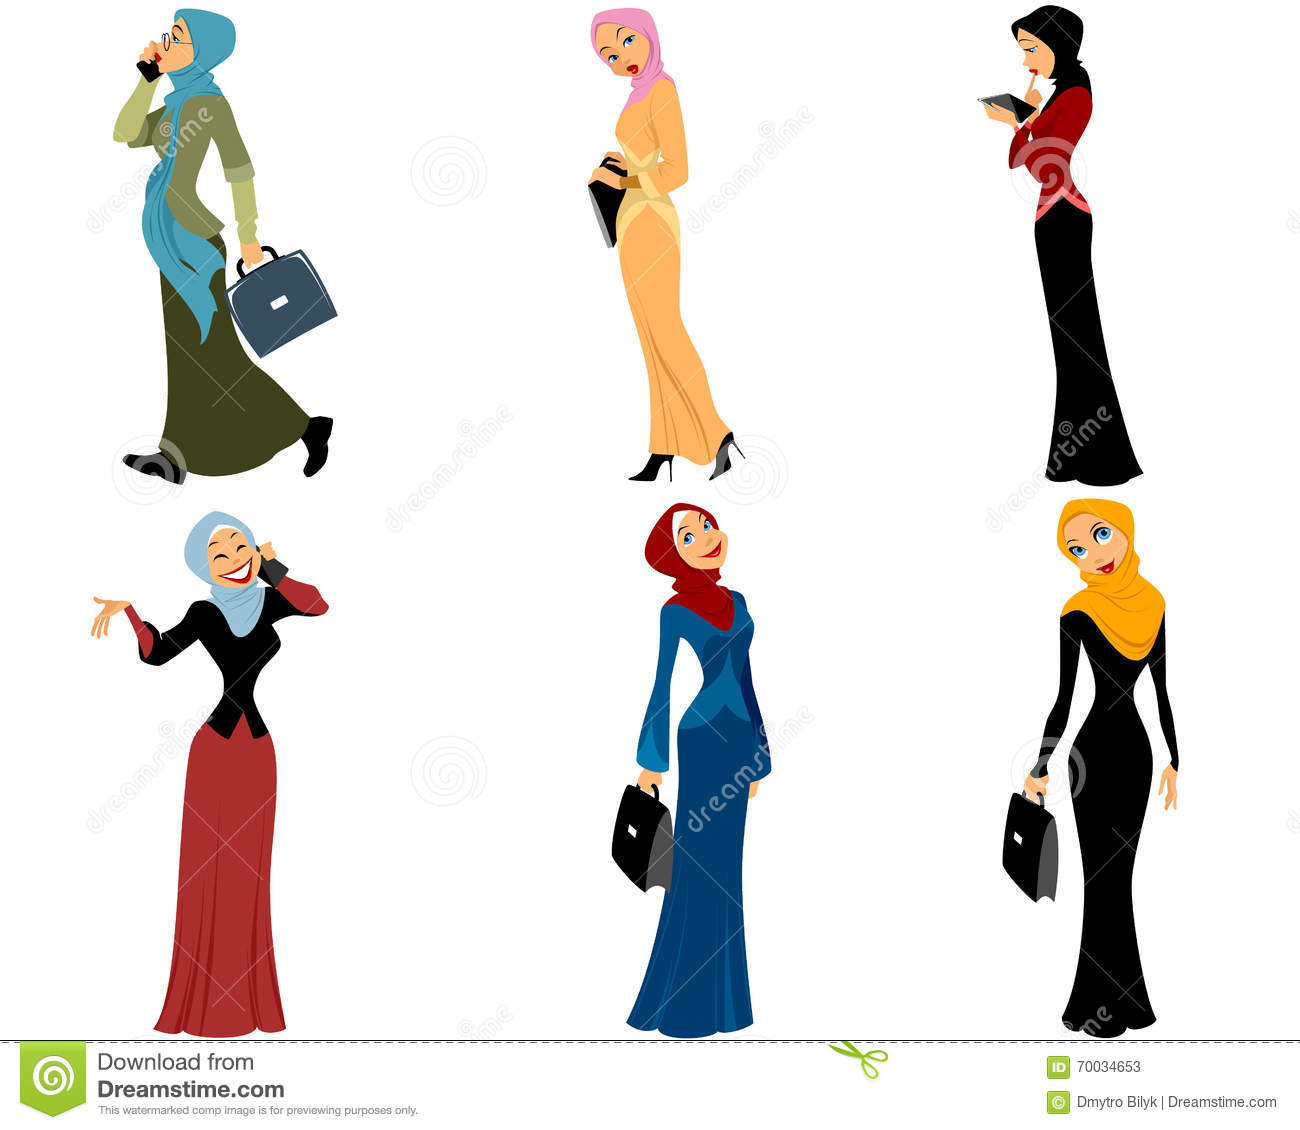 Arab woman in hijab no money no problem arabs exposed xc15339 - 2 4